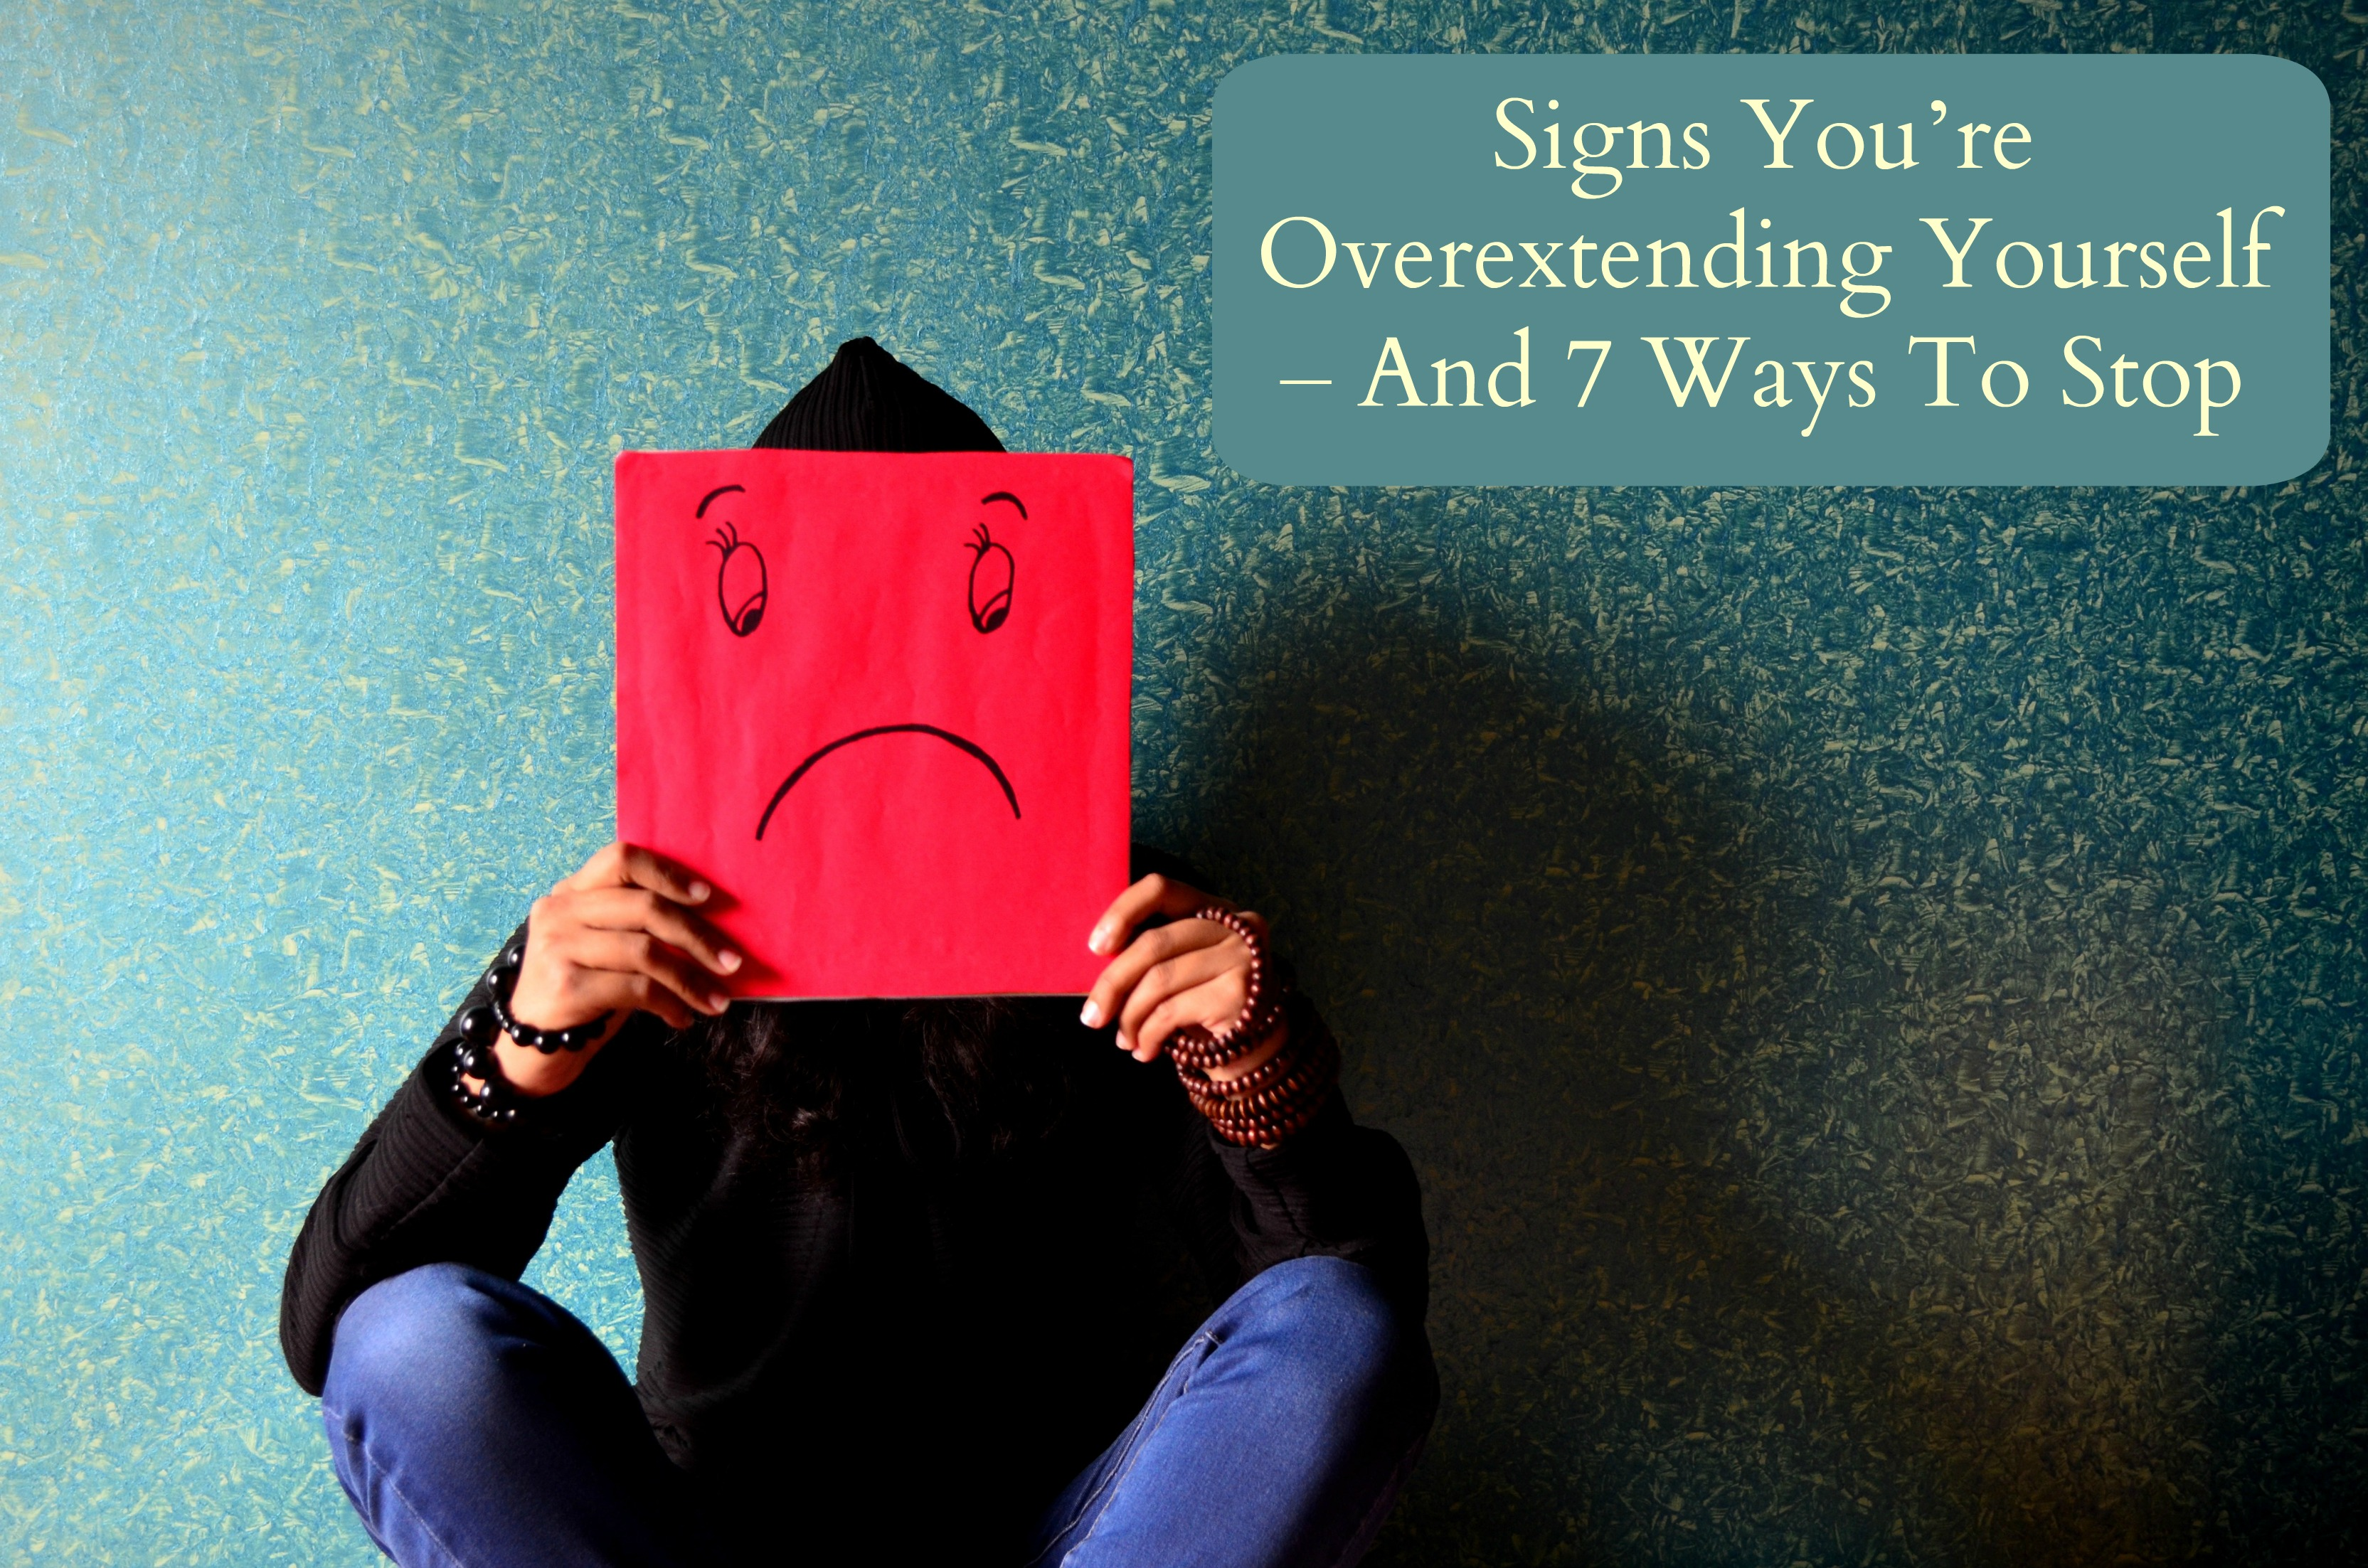 Are you Overextending Yourself? Here are 7 Ways To Stop